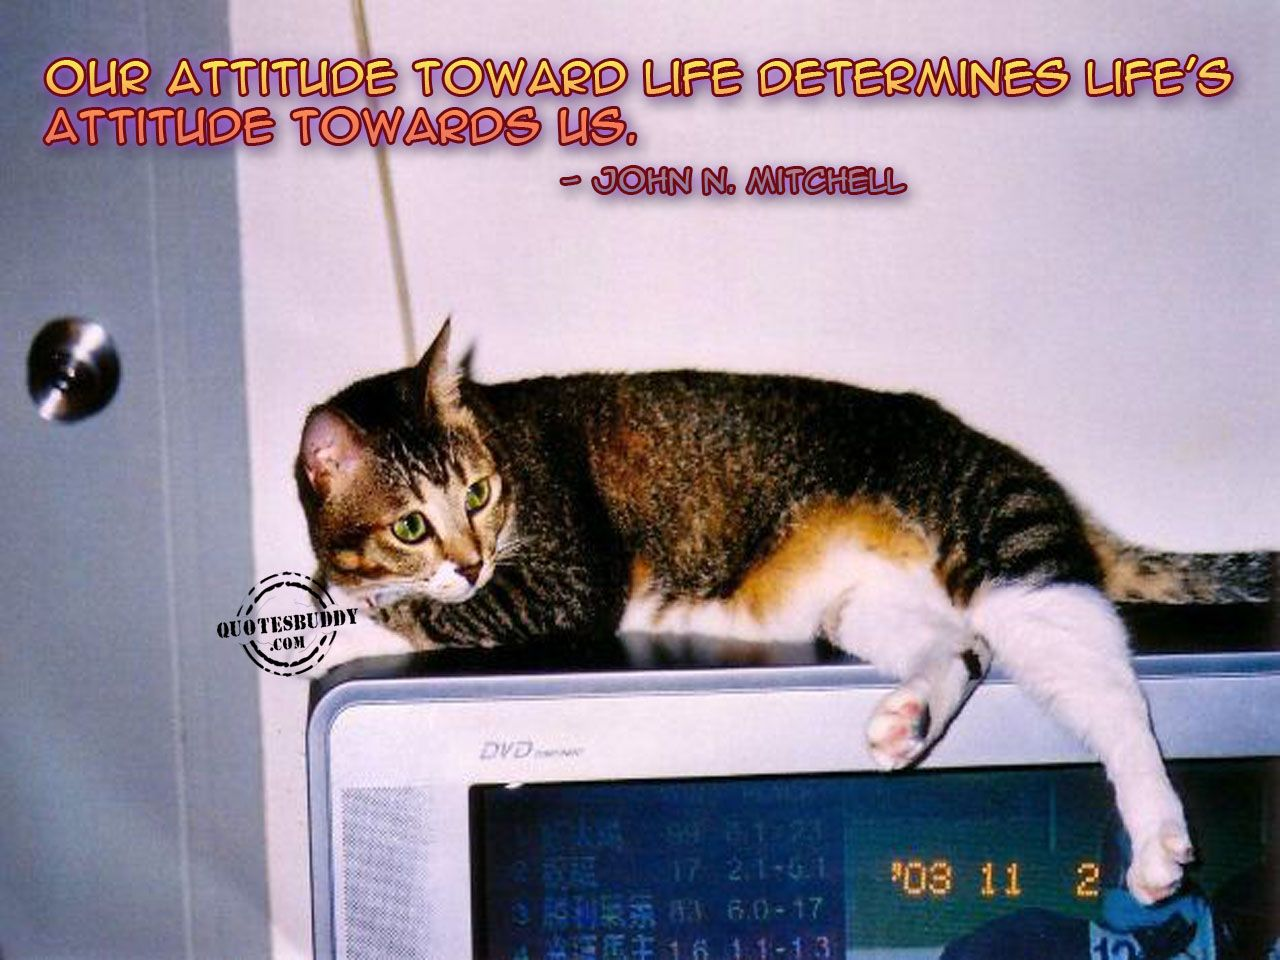 Inspiring Quote With Cat In Photo Inspirational Quotes Cats Short Positive Quotes